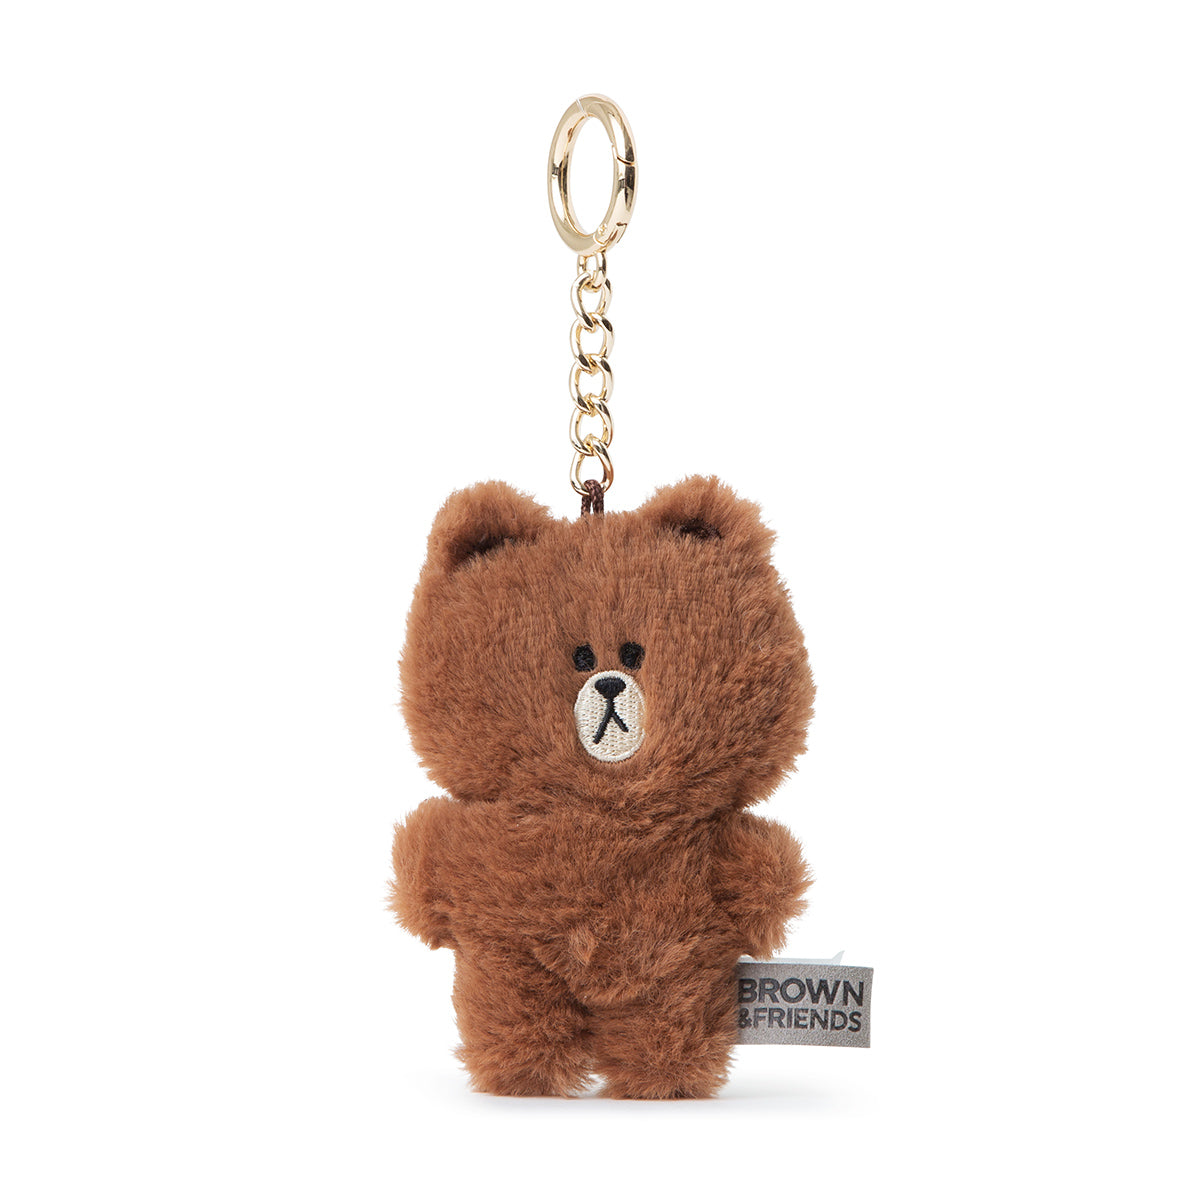 LINE FRIENDS BROWN Flat Fur Plush Bag Charm 10cm